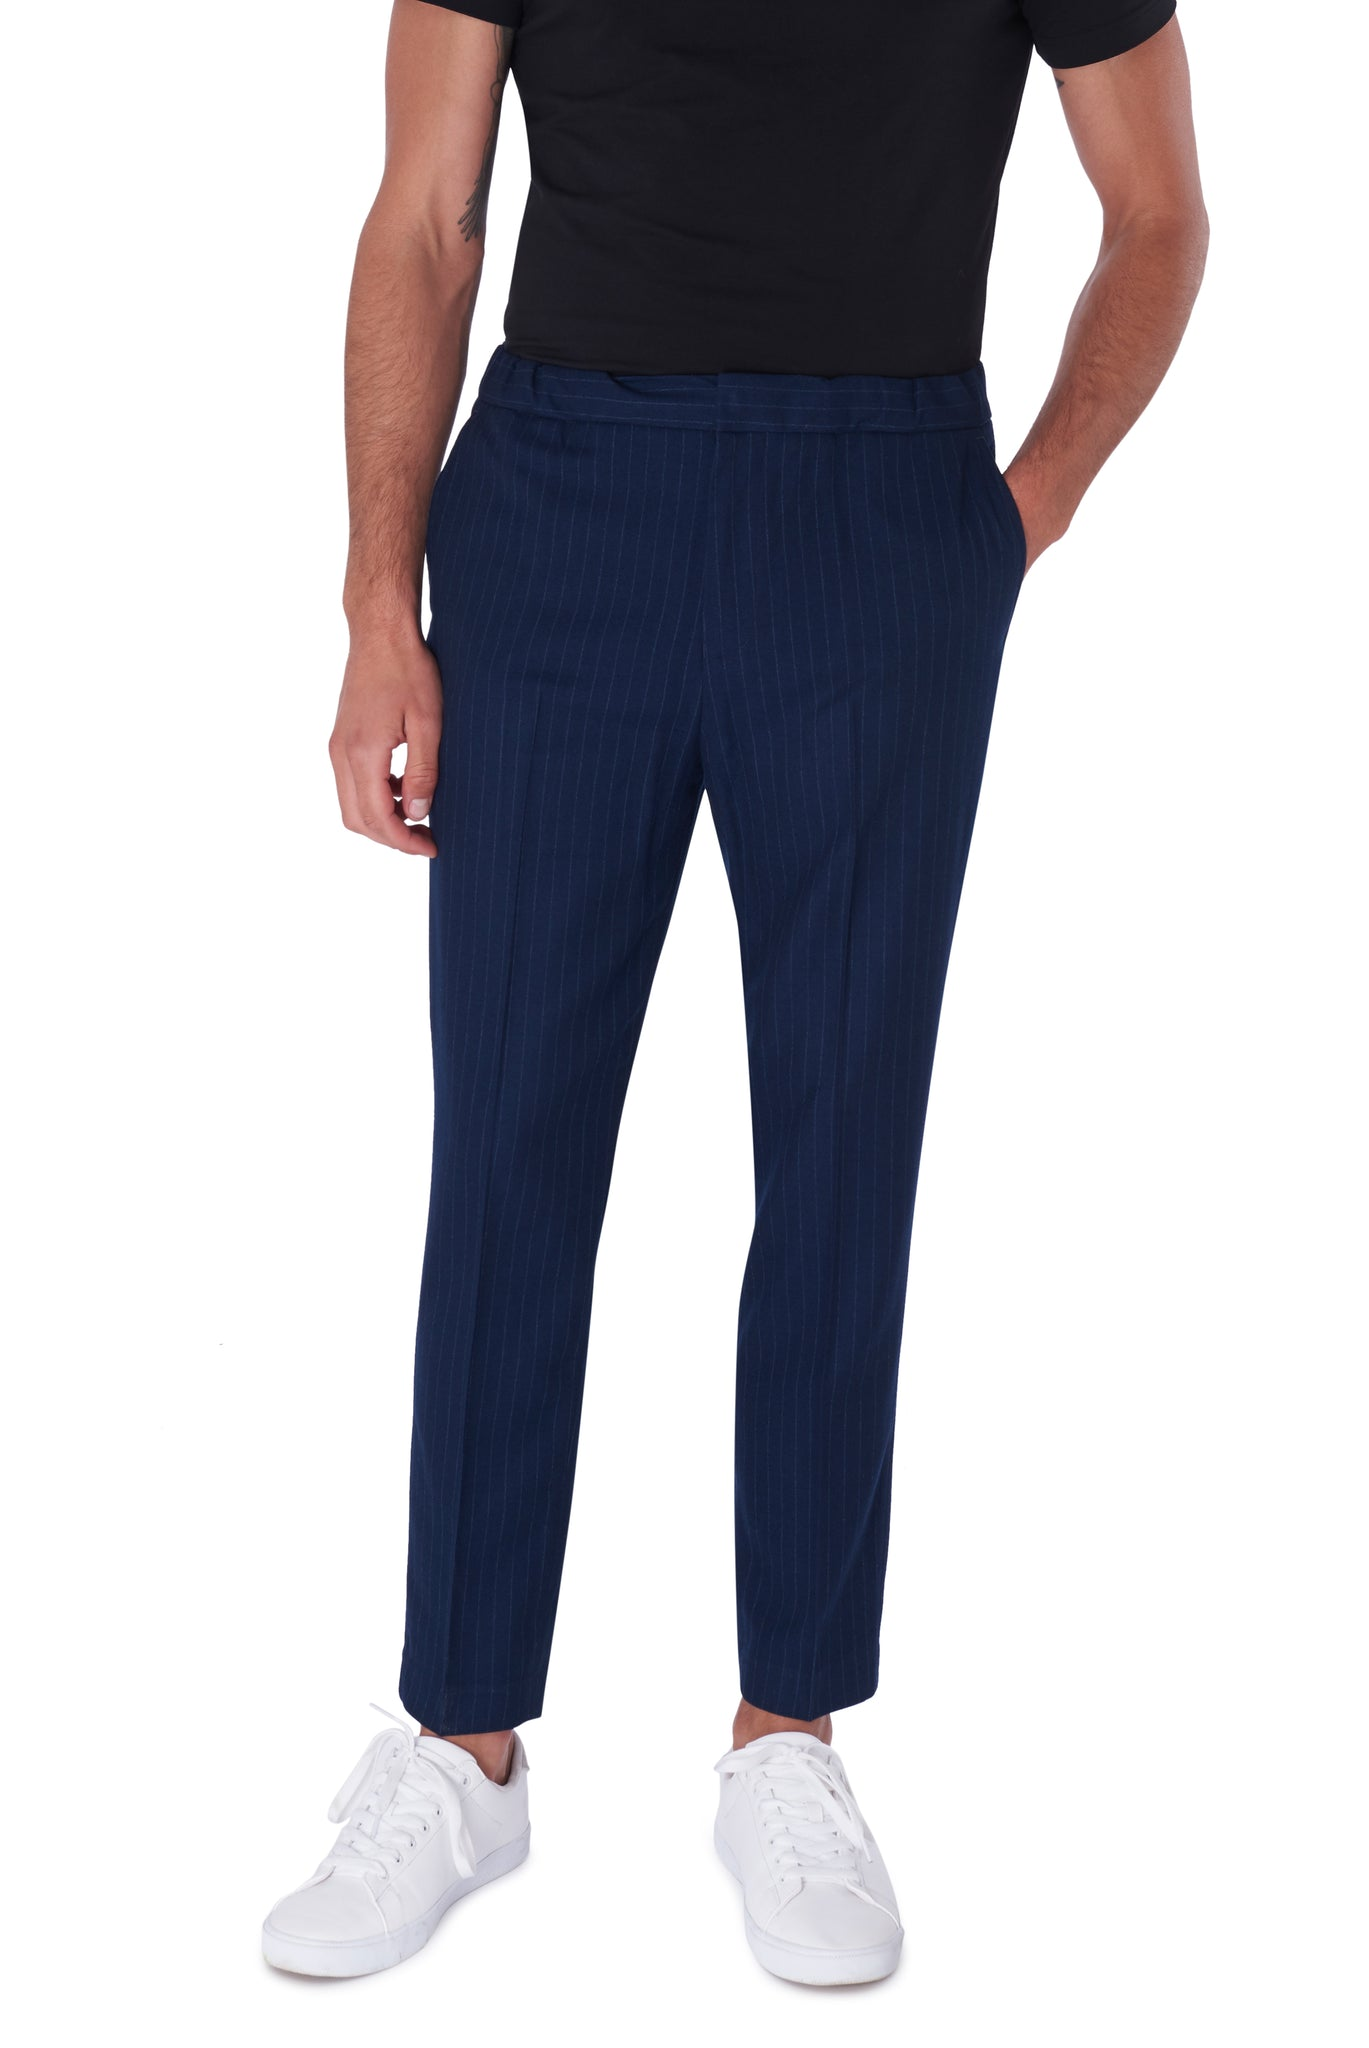 REGGIE Elasticated Waist Trouser